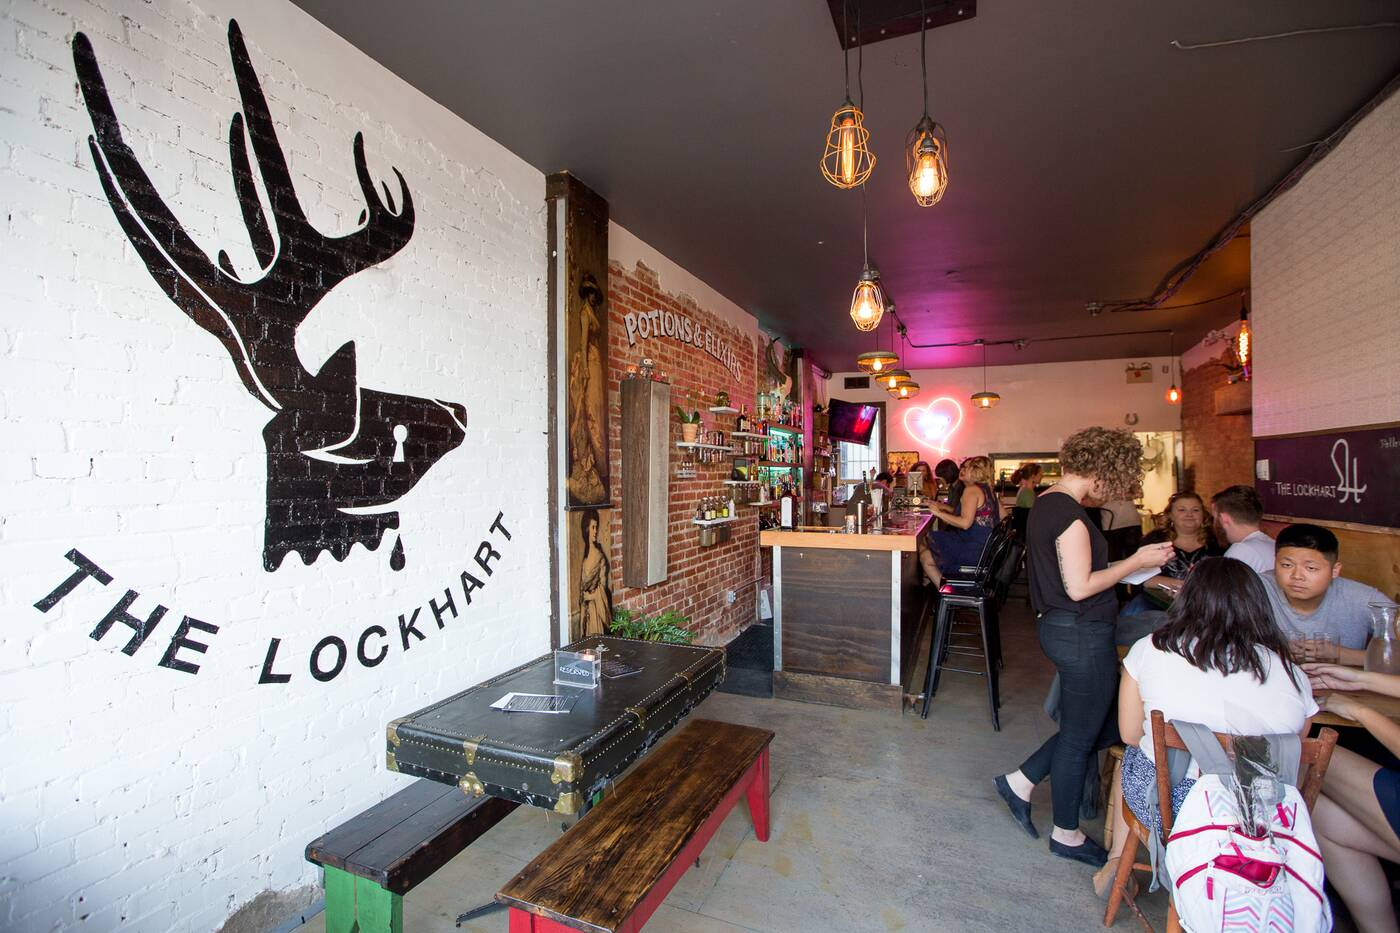 The Lockhart Toronto